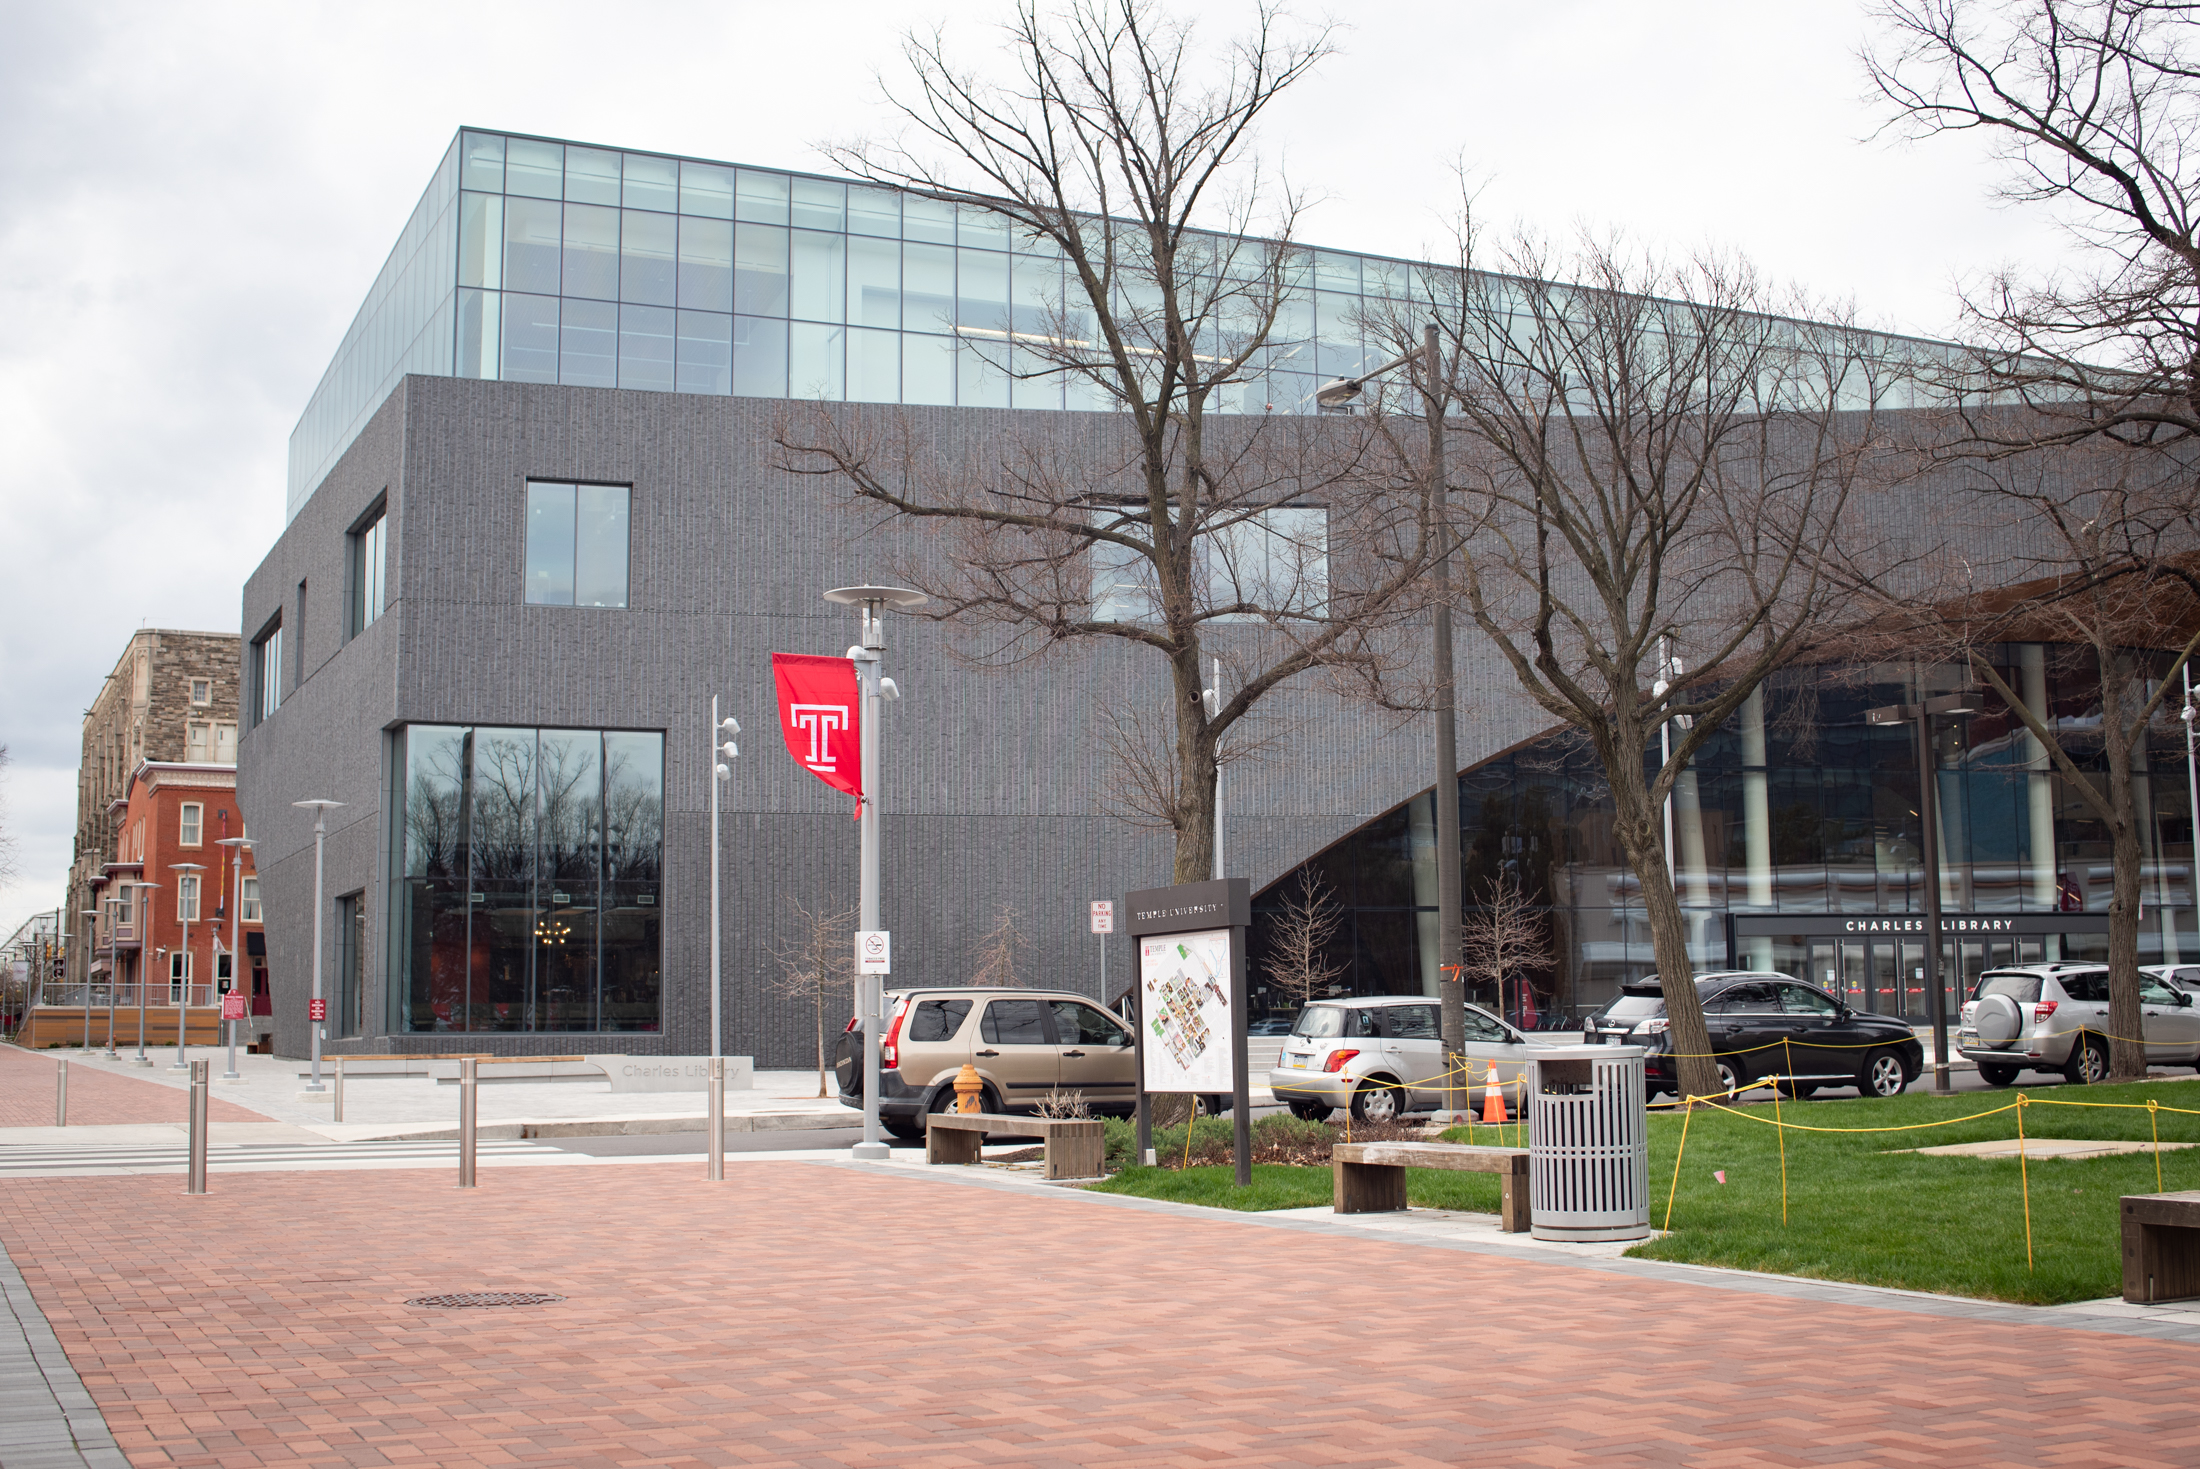 Temple University Christmas Break 2020 Temple University before and after COVID 19 closure – The Temple News